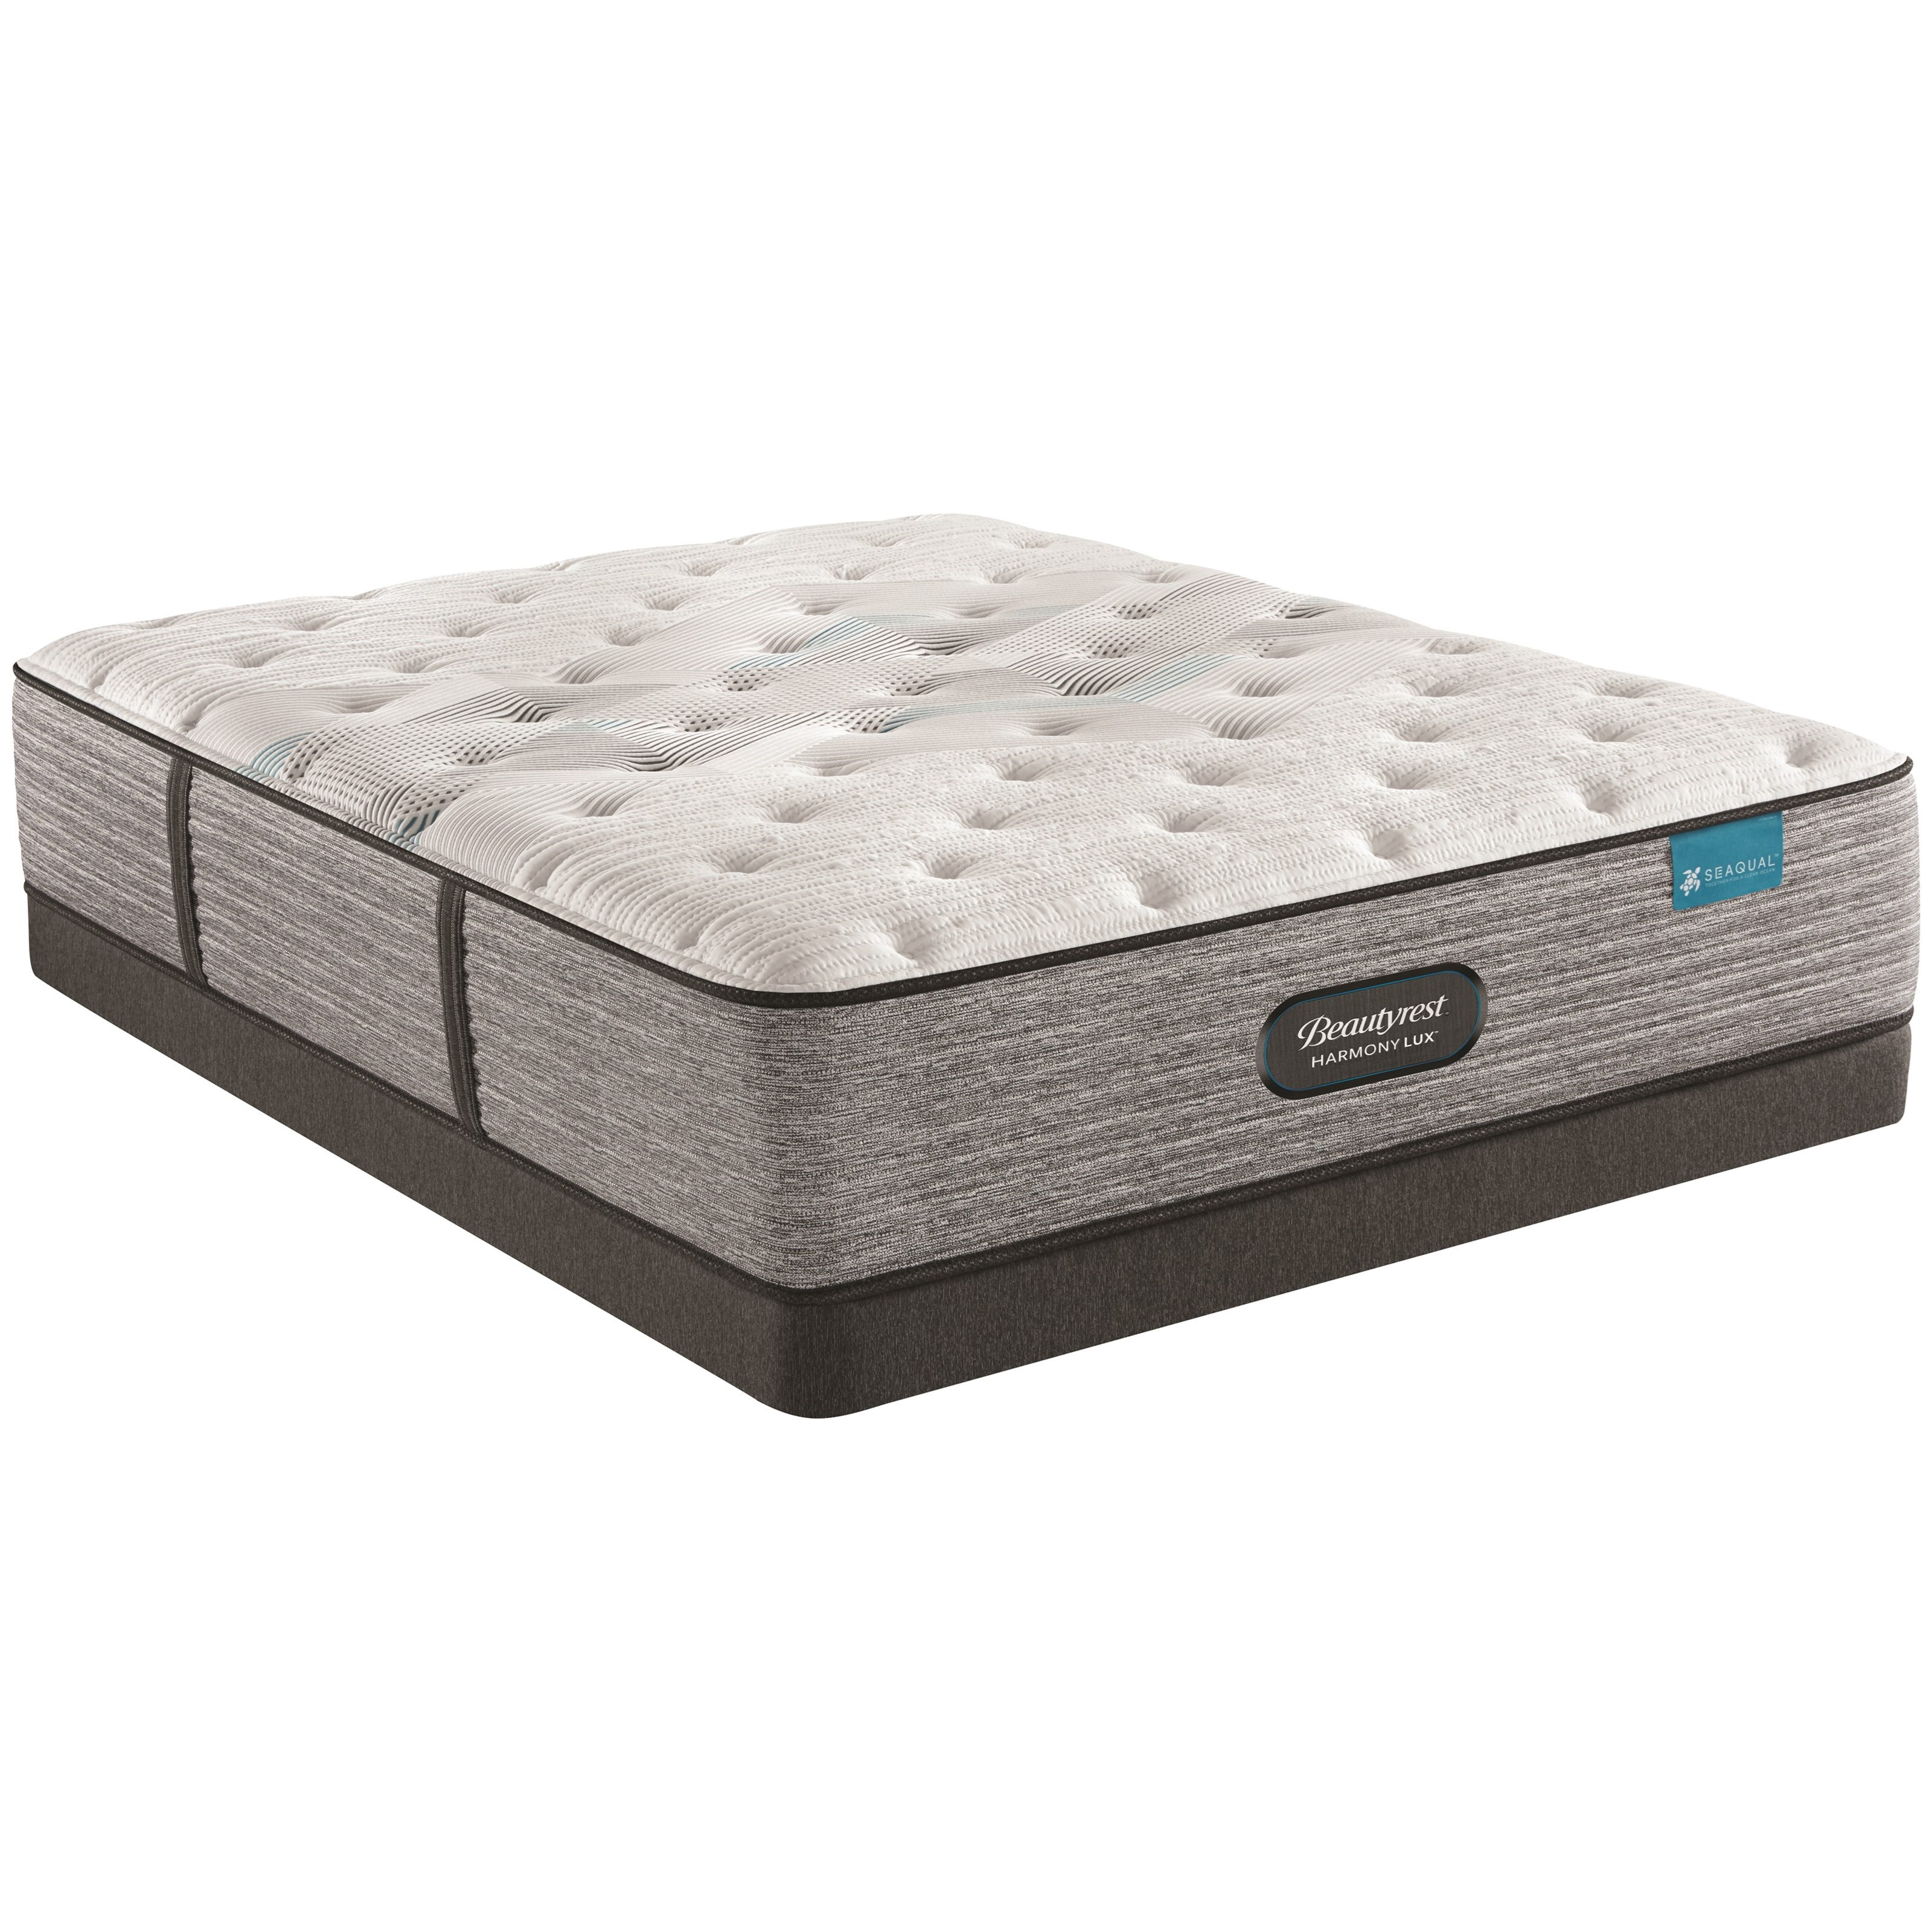 "Carbon Series Plush Full 13 3/4"" Plush Low Profile Set by Beautyrest at Rotmans"